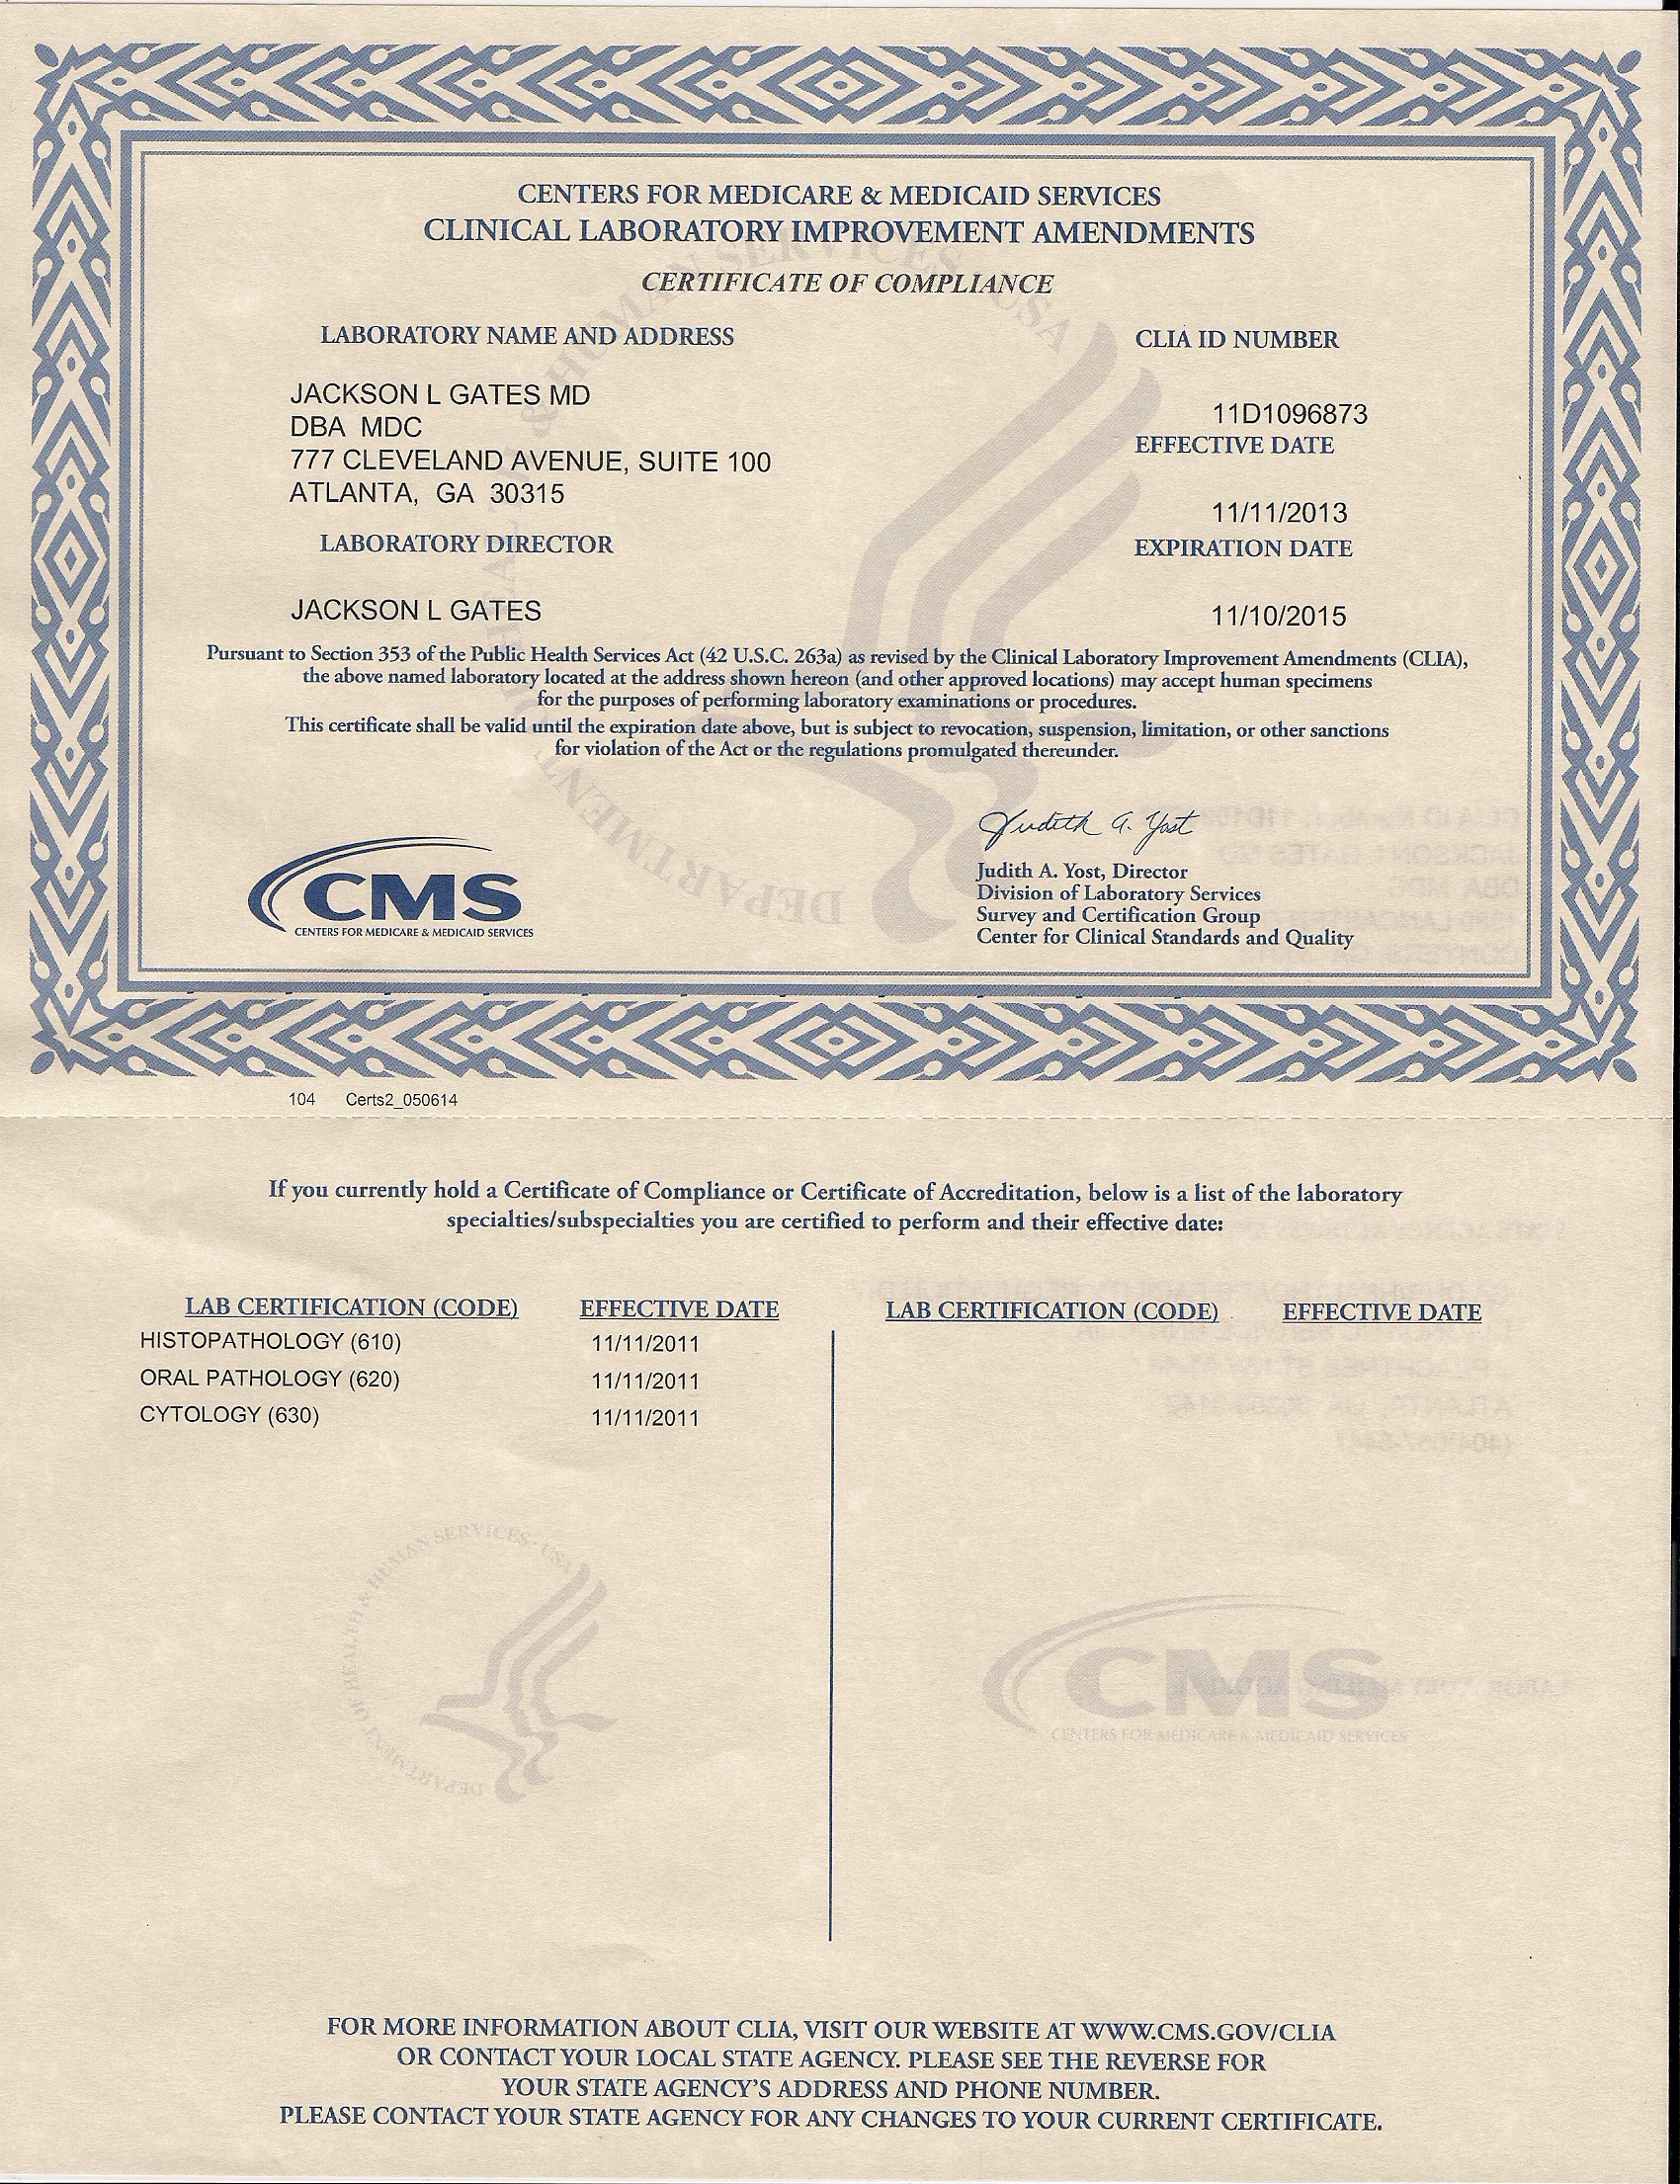 clia certificate compliance mdc medical atlanta updated diagnostic current laboratory gates dr choices